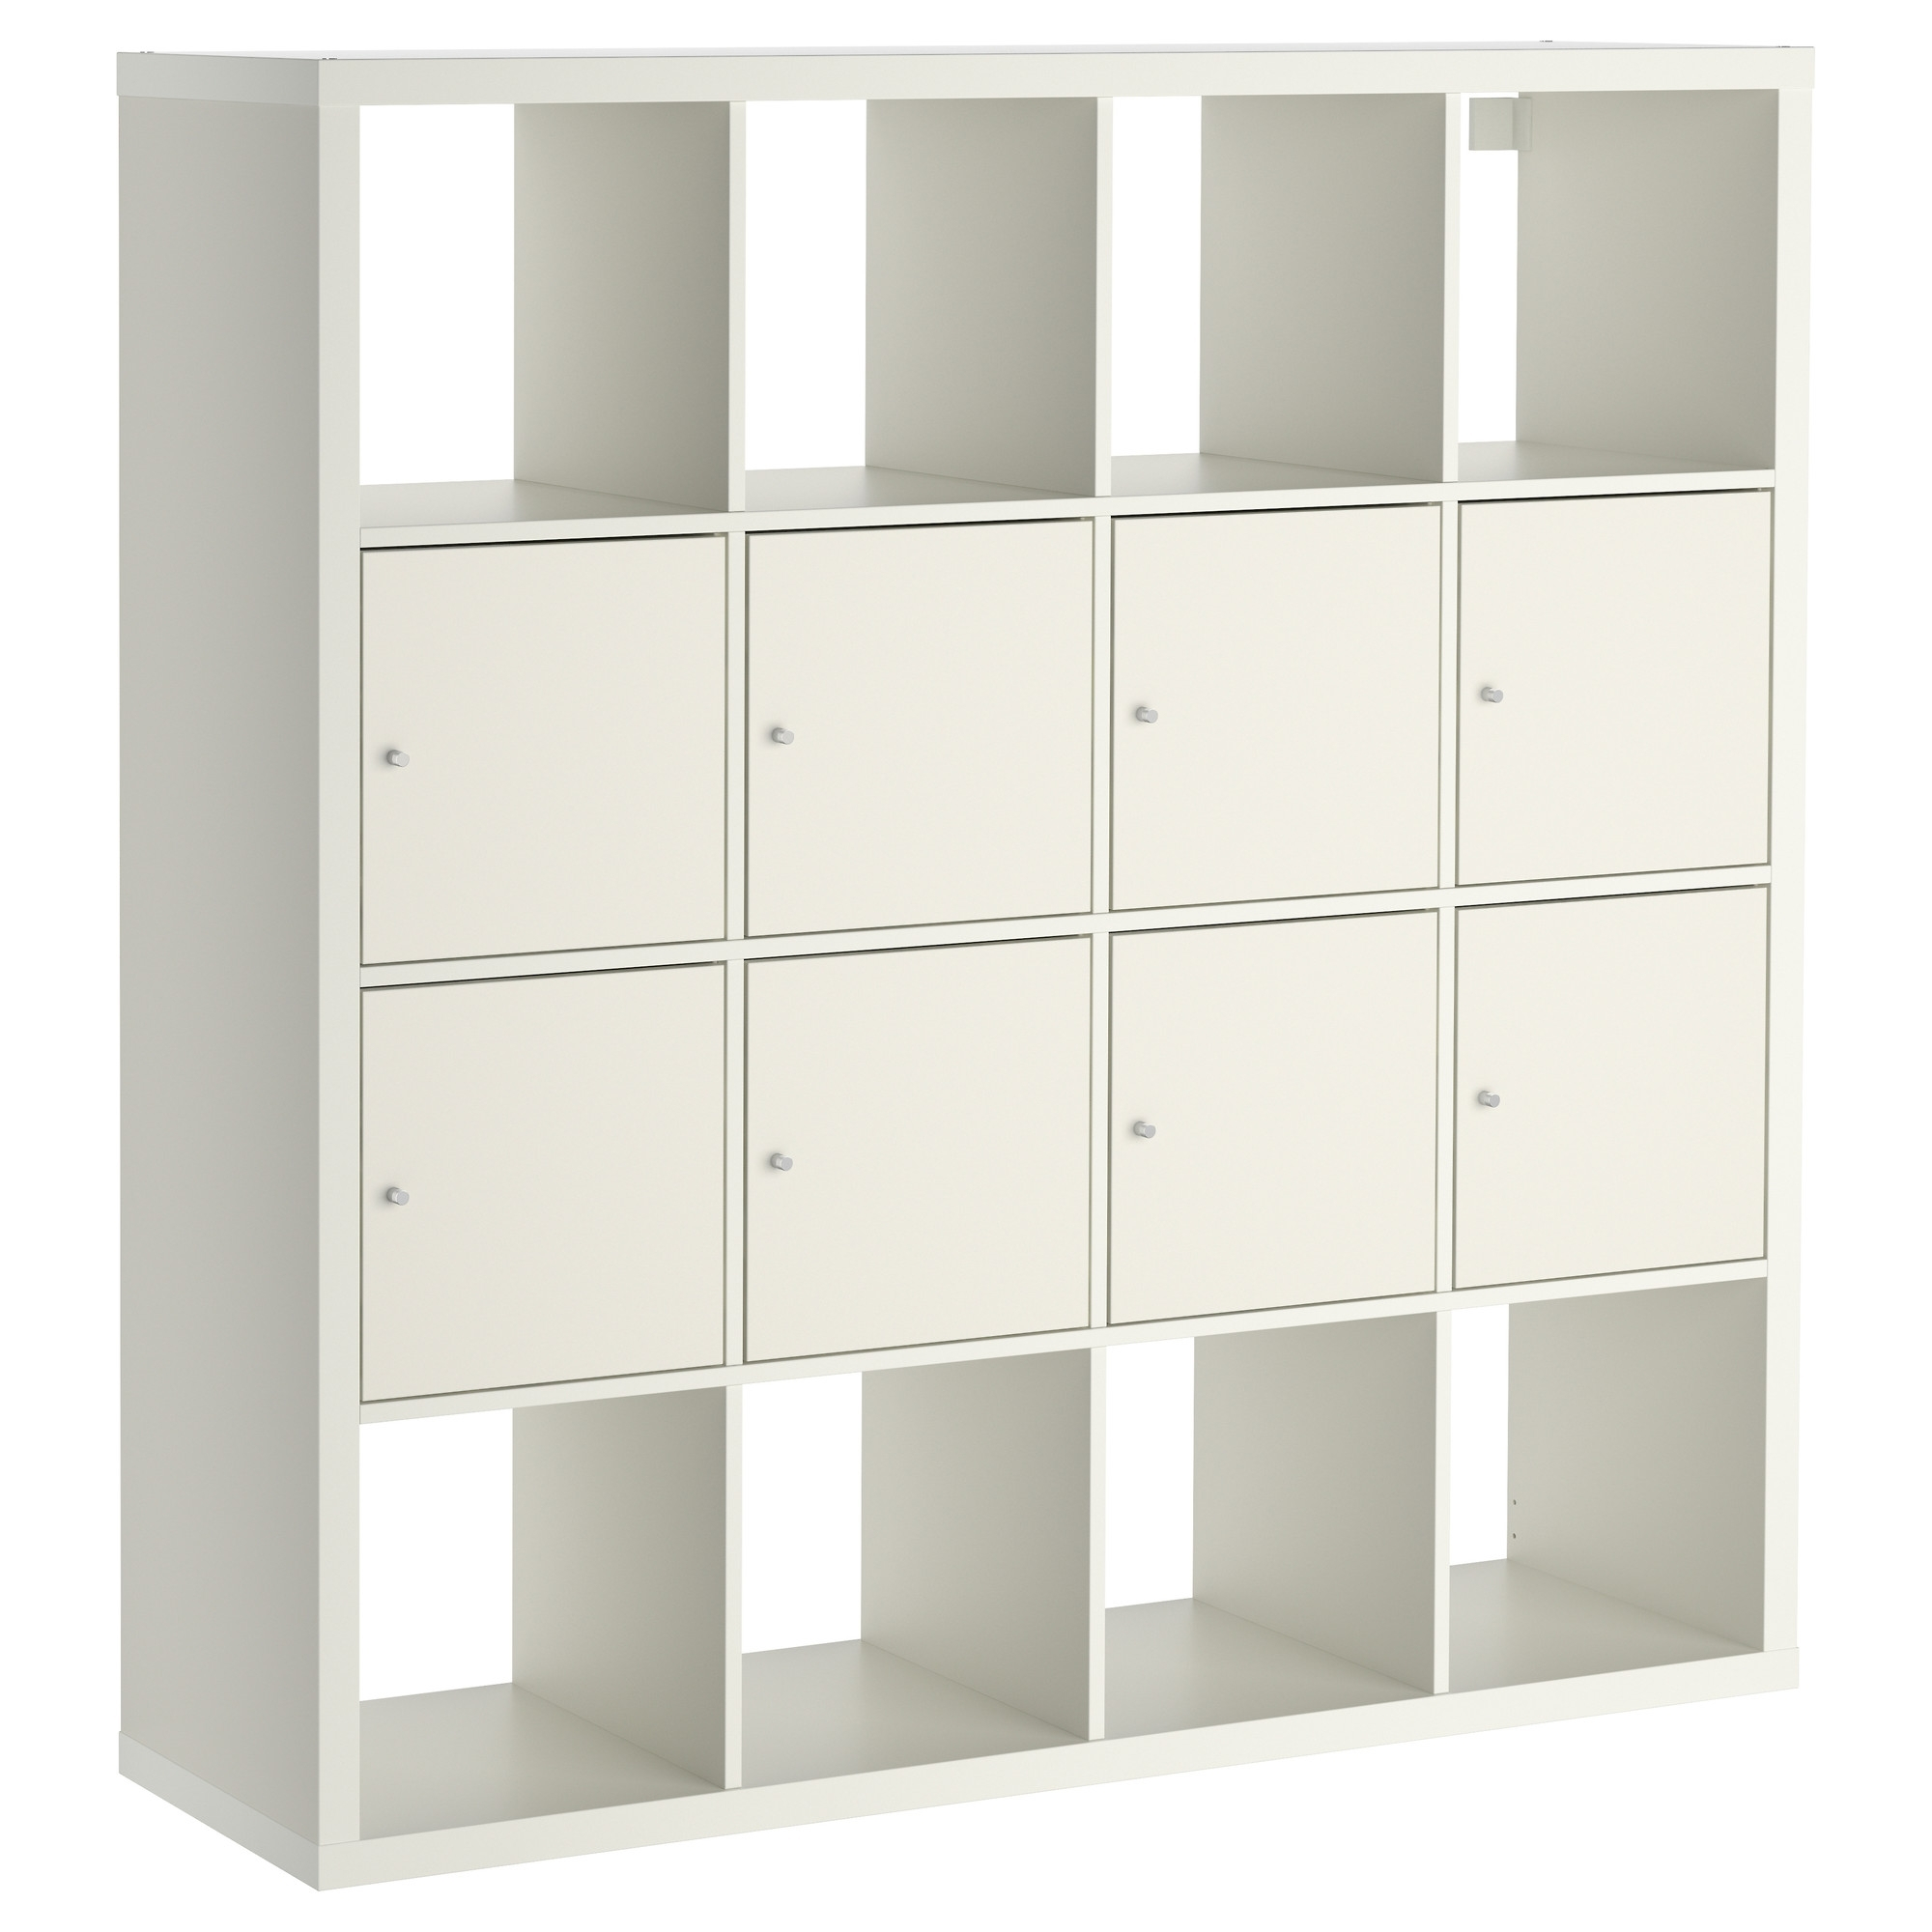 "Kallax Shelf Unit With 8 Inserts – White, 57 7/8x57 7/8 "" – Ikea Intended For Well Known Ikea Kallax Bookcases (View 7 of 15)"